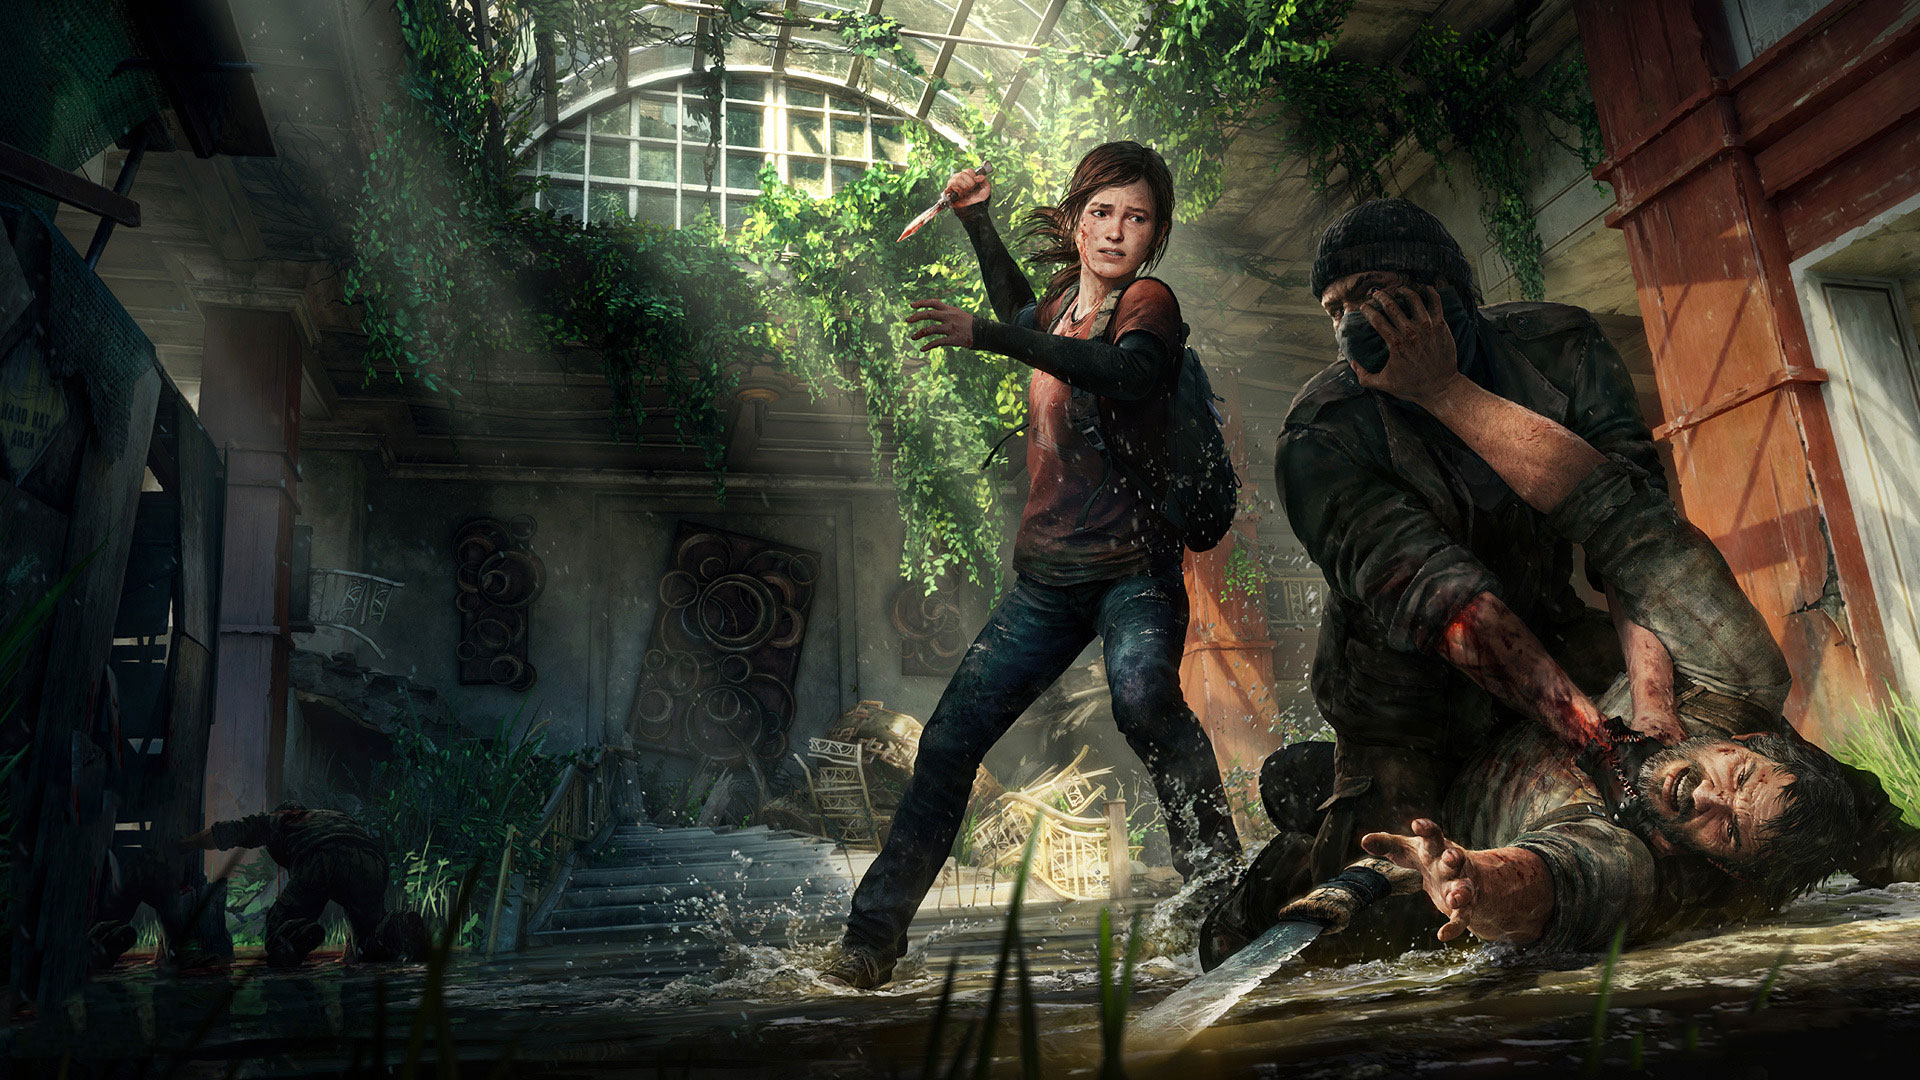 The Last Of Us Game Poster